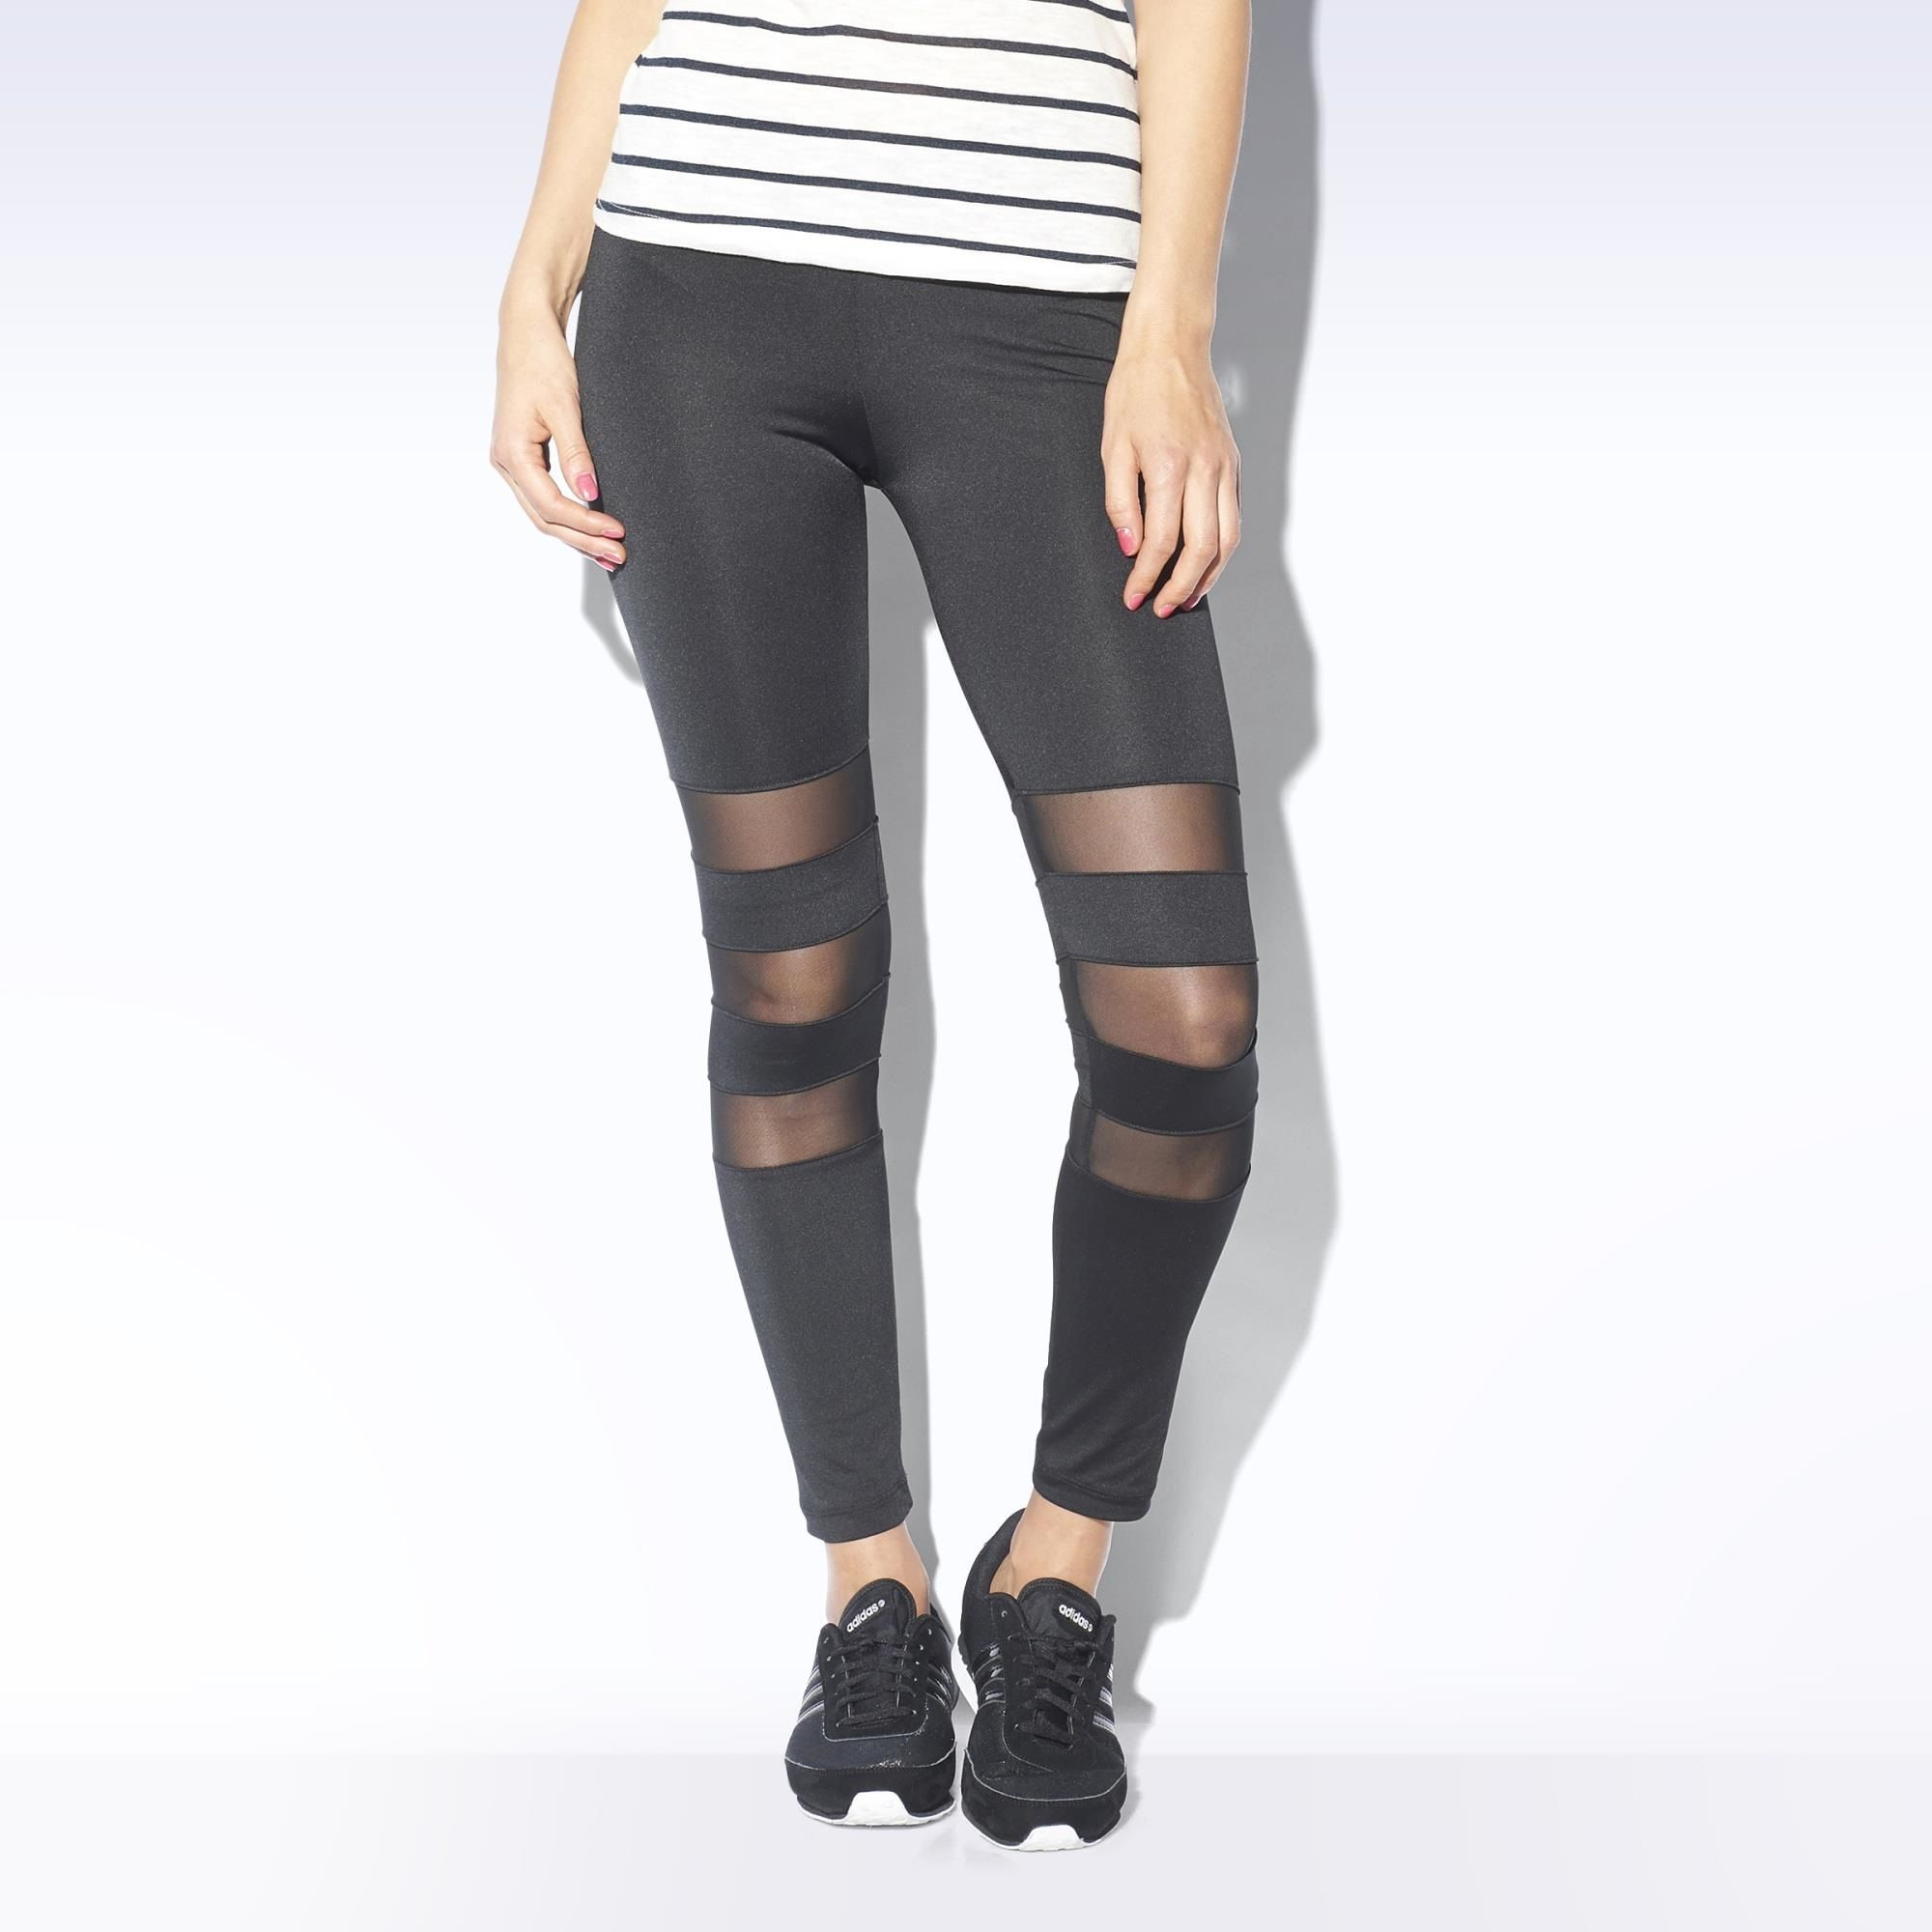 5dadc3ad9911b9 adidas leggings neo clearance-Kostenlose Lieferung!